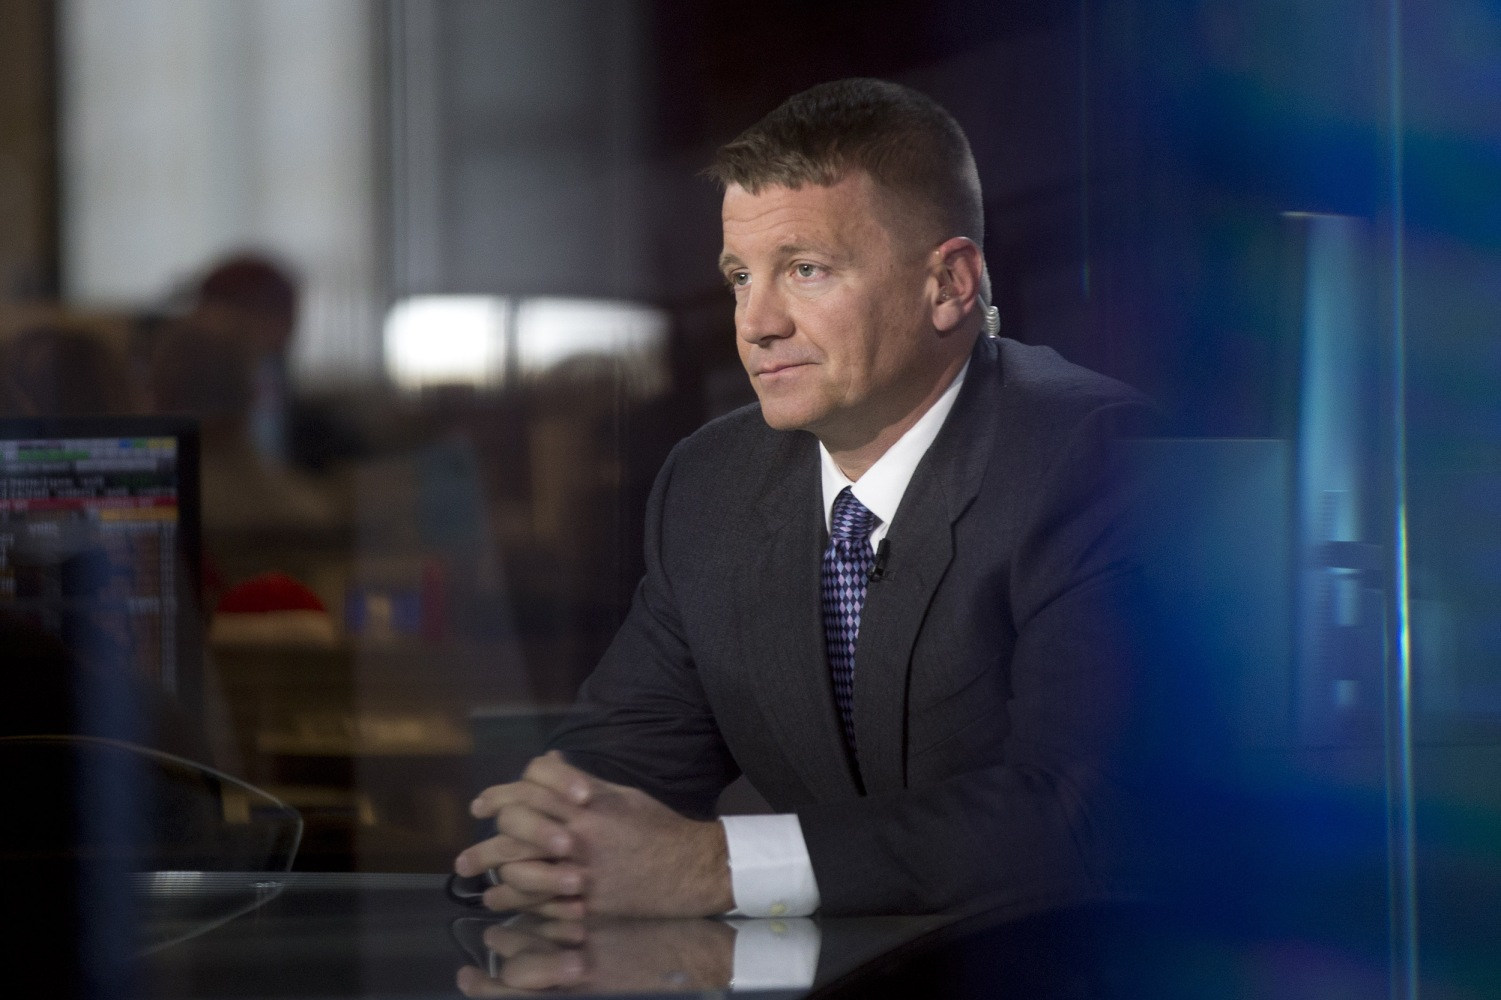 WashPost: Blackwater Founder Secretly Met With Russian to Create Trump-Putin Link